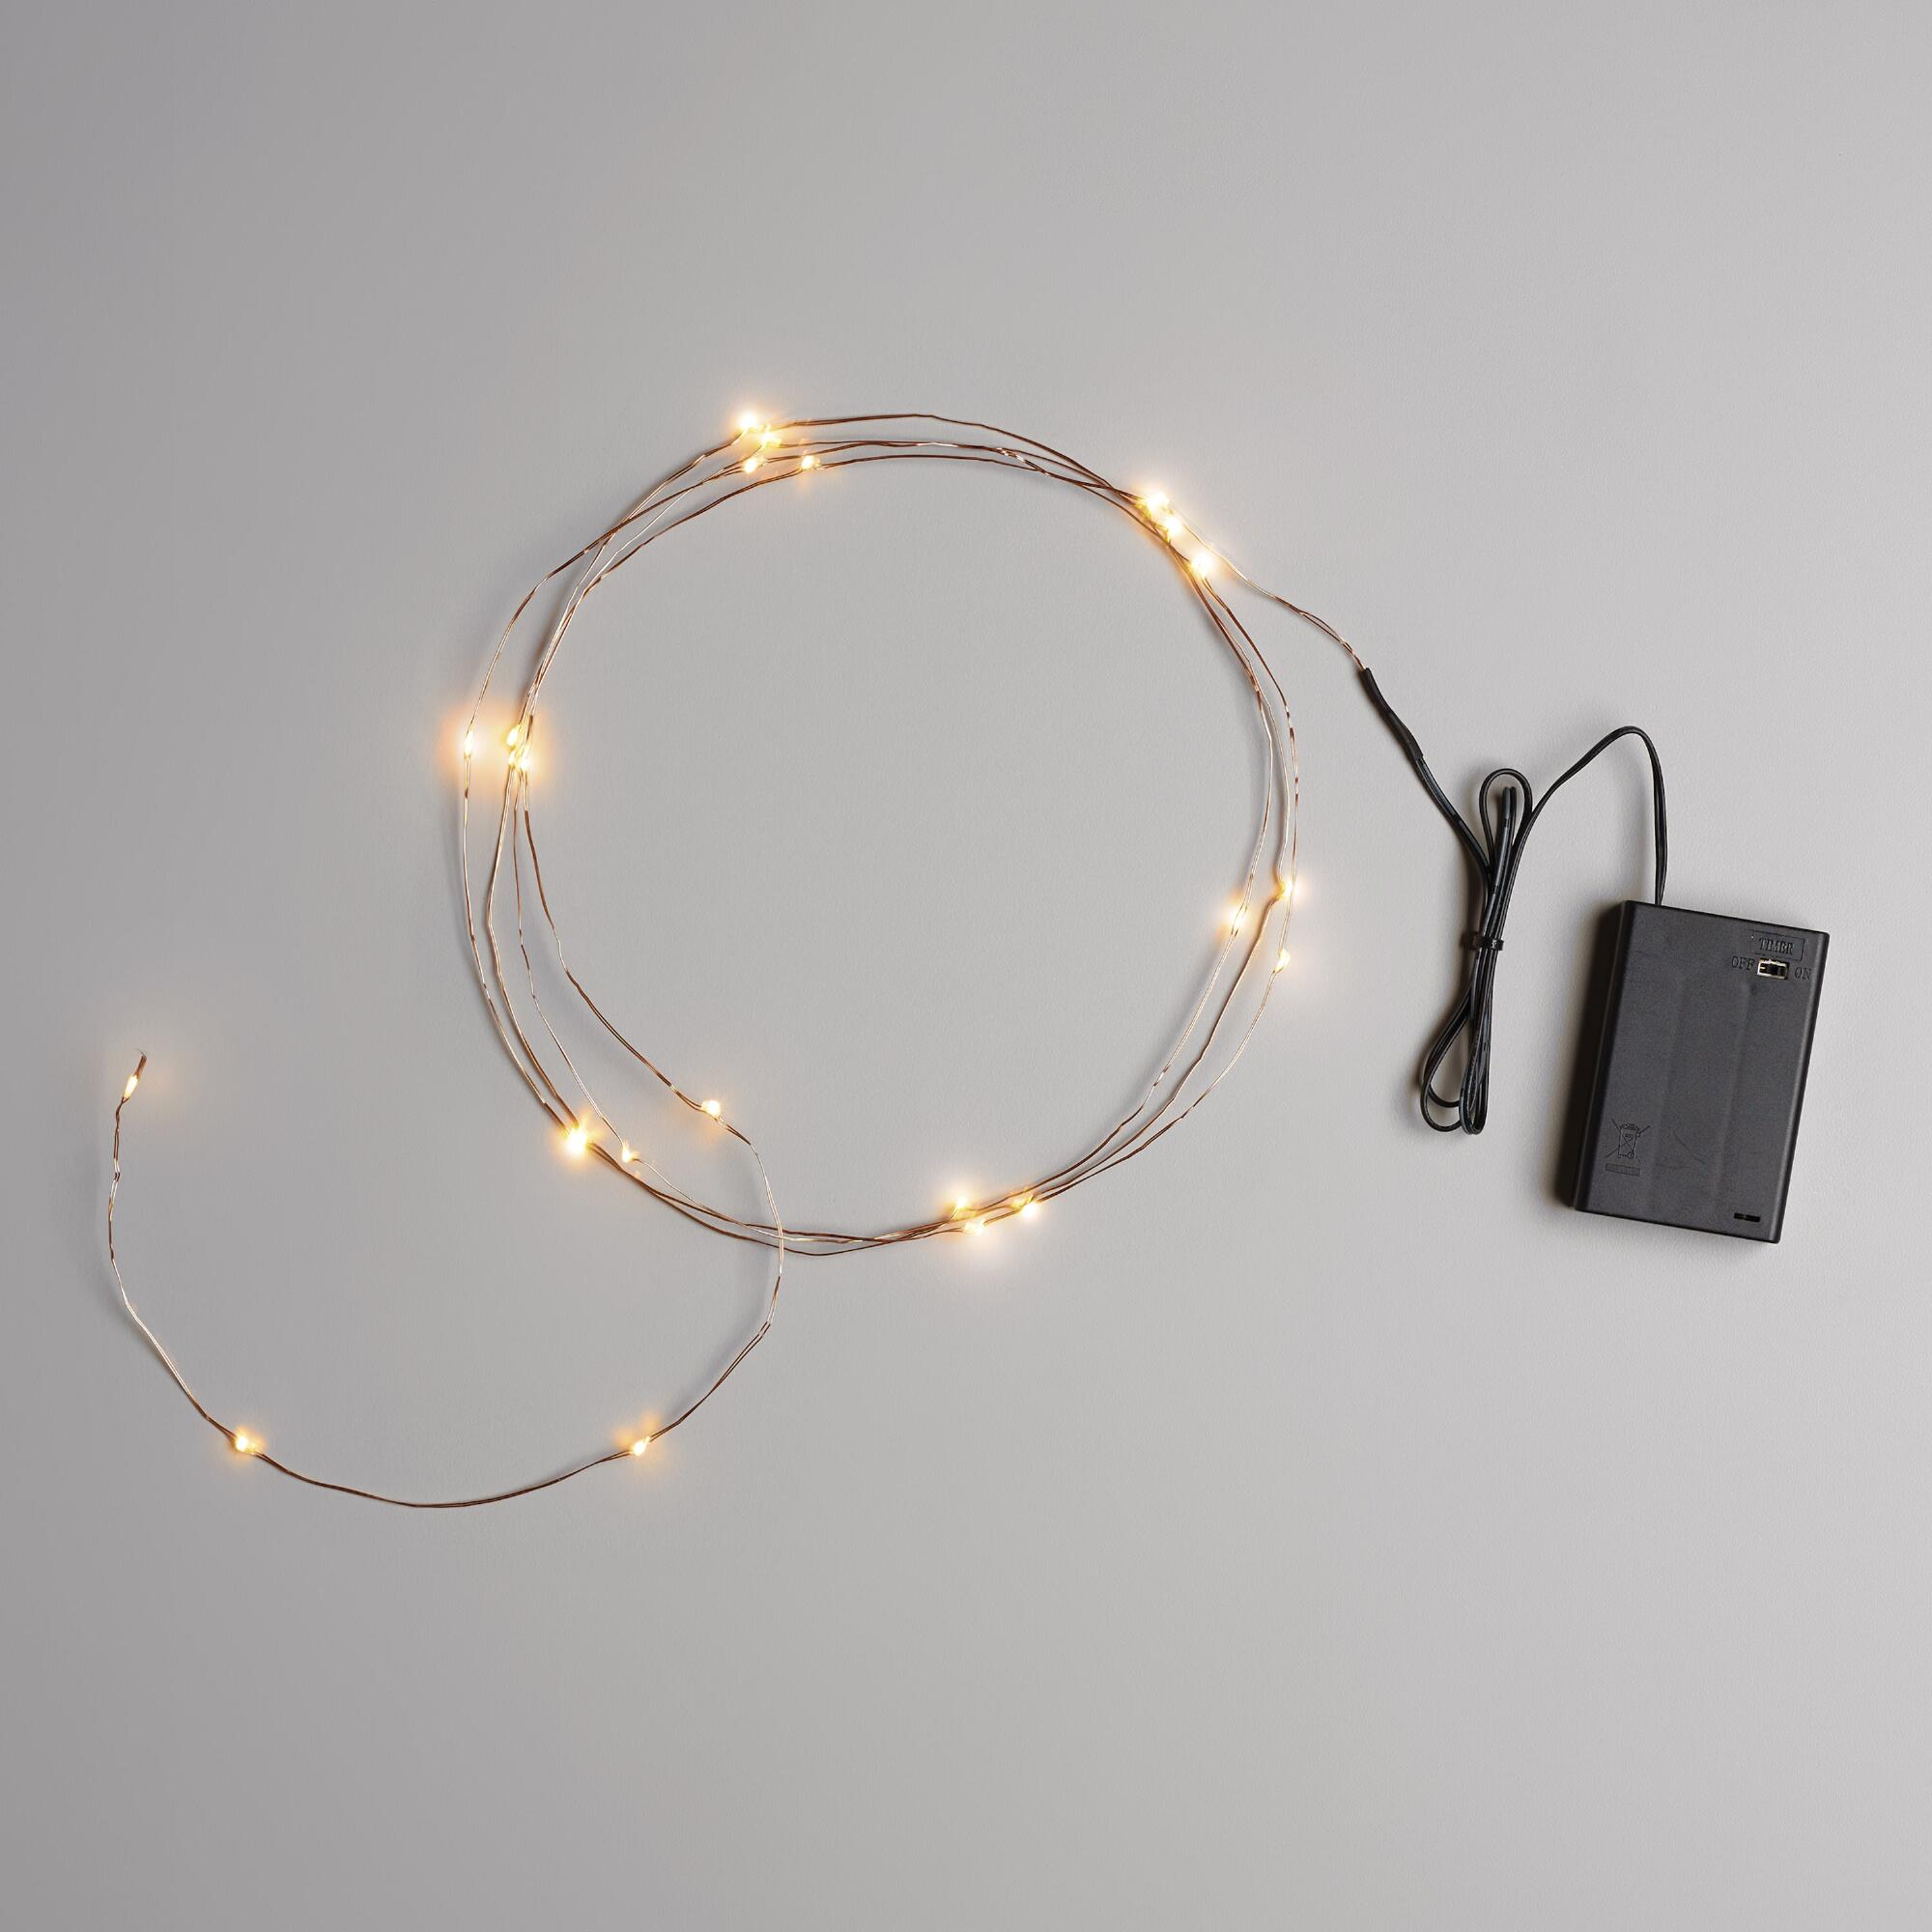 copper micro led 25 bulb battery operated string lights - Decorative Lighting